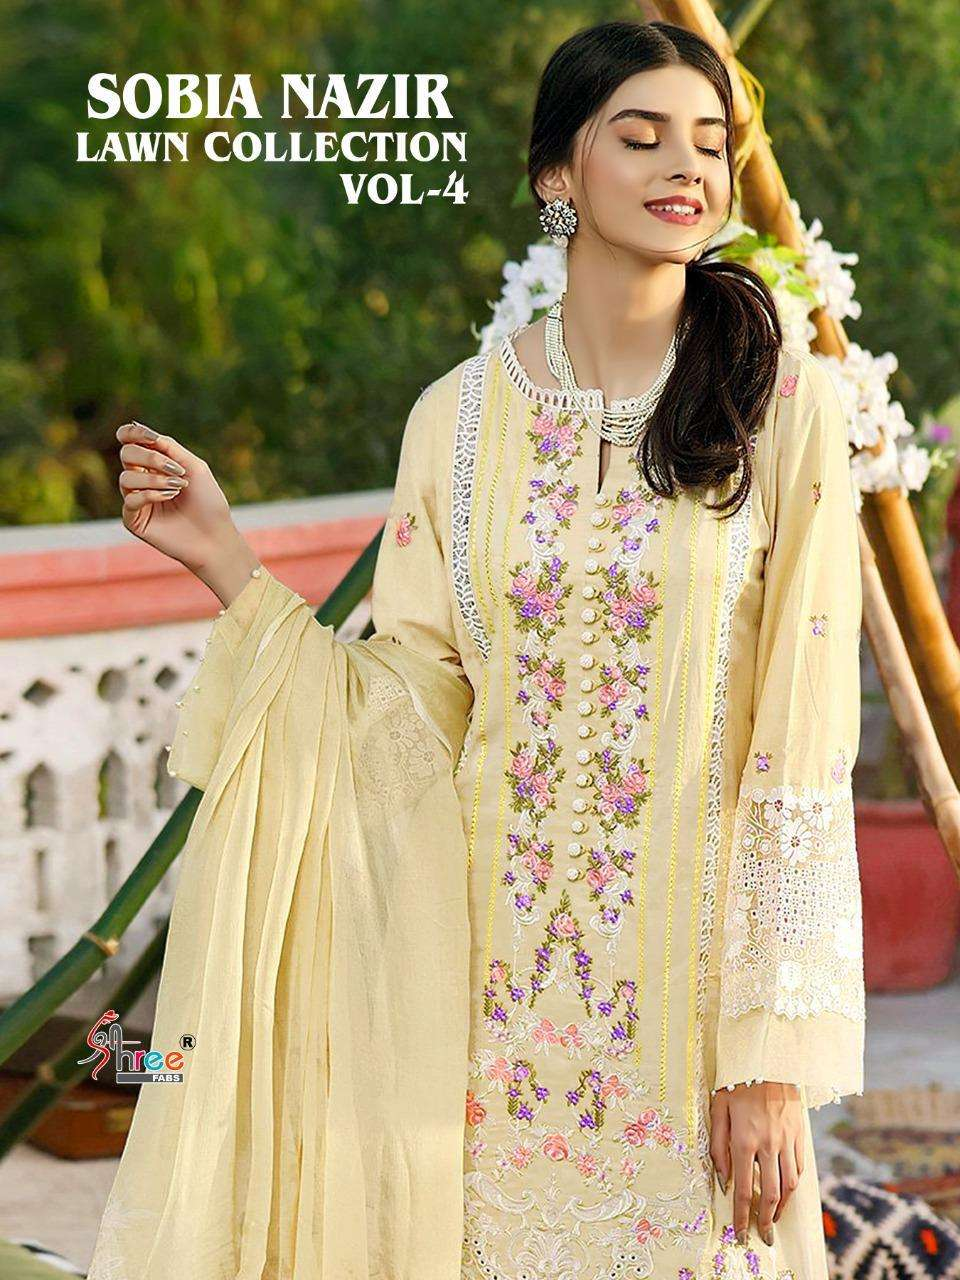 SHREE FAB SOBIA NAZIR LAWN COLLECTION VOL 4 DESIGNER LAWN COTTON WITH SELF EMBROIDERY WORK PAKISTANI PATTERN SUITS WHOLESALE